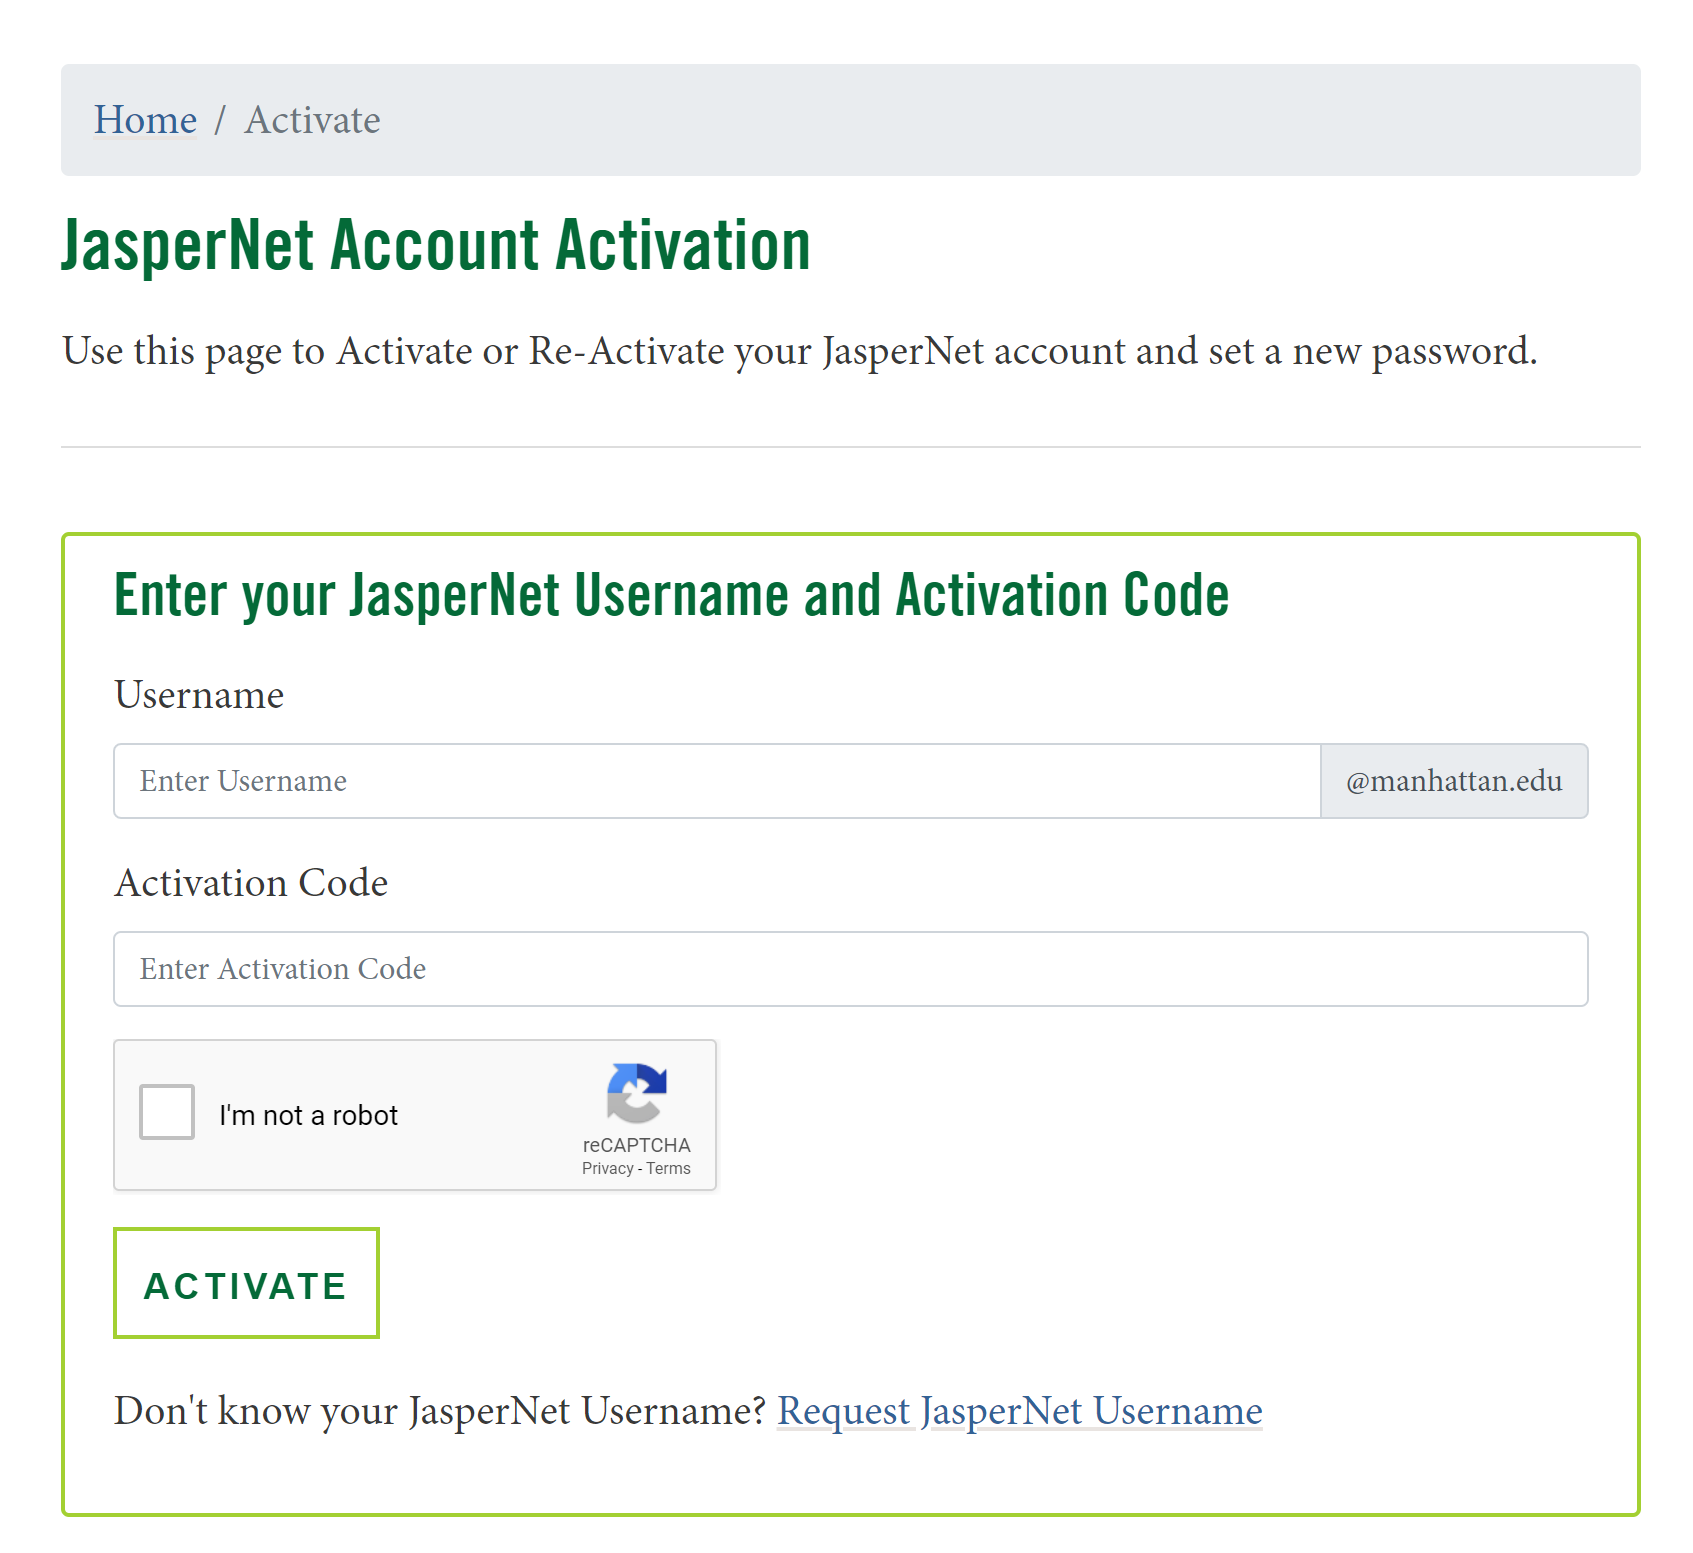 image depicting the account setup page and activation code prompt